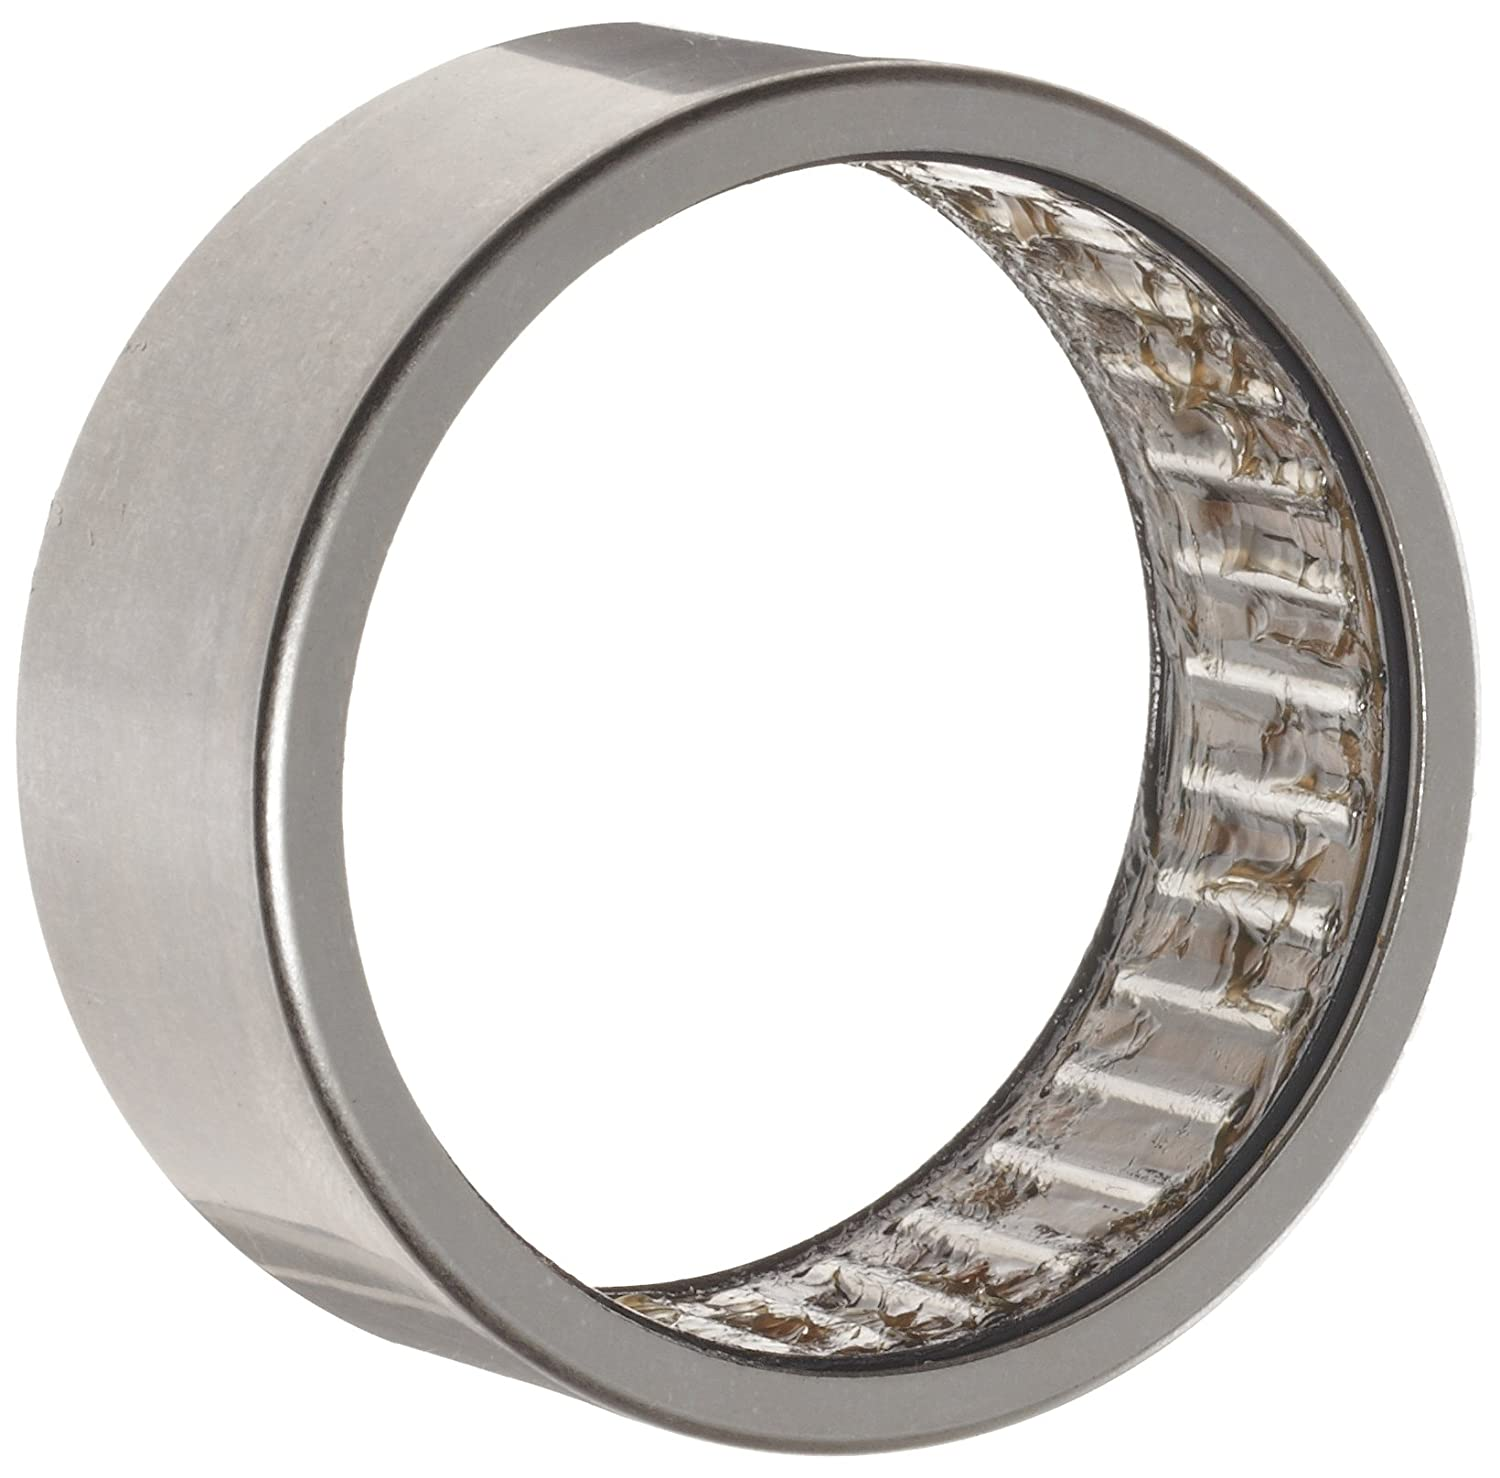 Outer Ring and Roller Caged Drawn Cup 32mm OD Double Sealed 30mm Width 7000rpm Maximum Rotational Speed Metric INA HK25302RS Needle Roller Bearing Steel Cage Open End 25mm ID